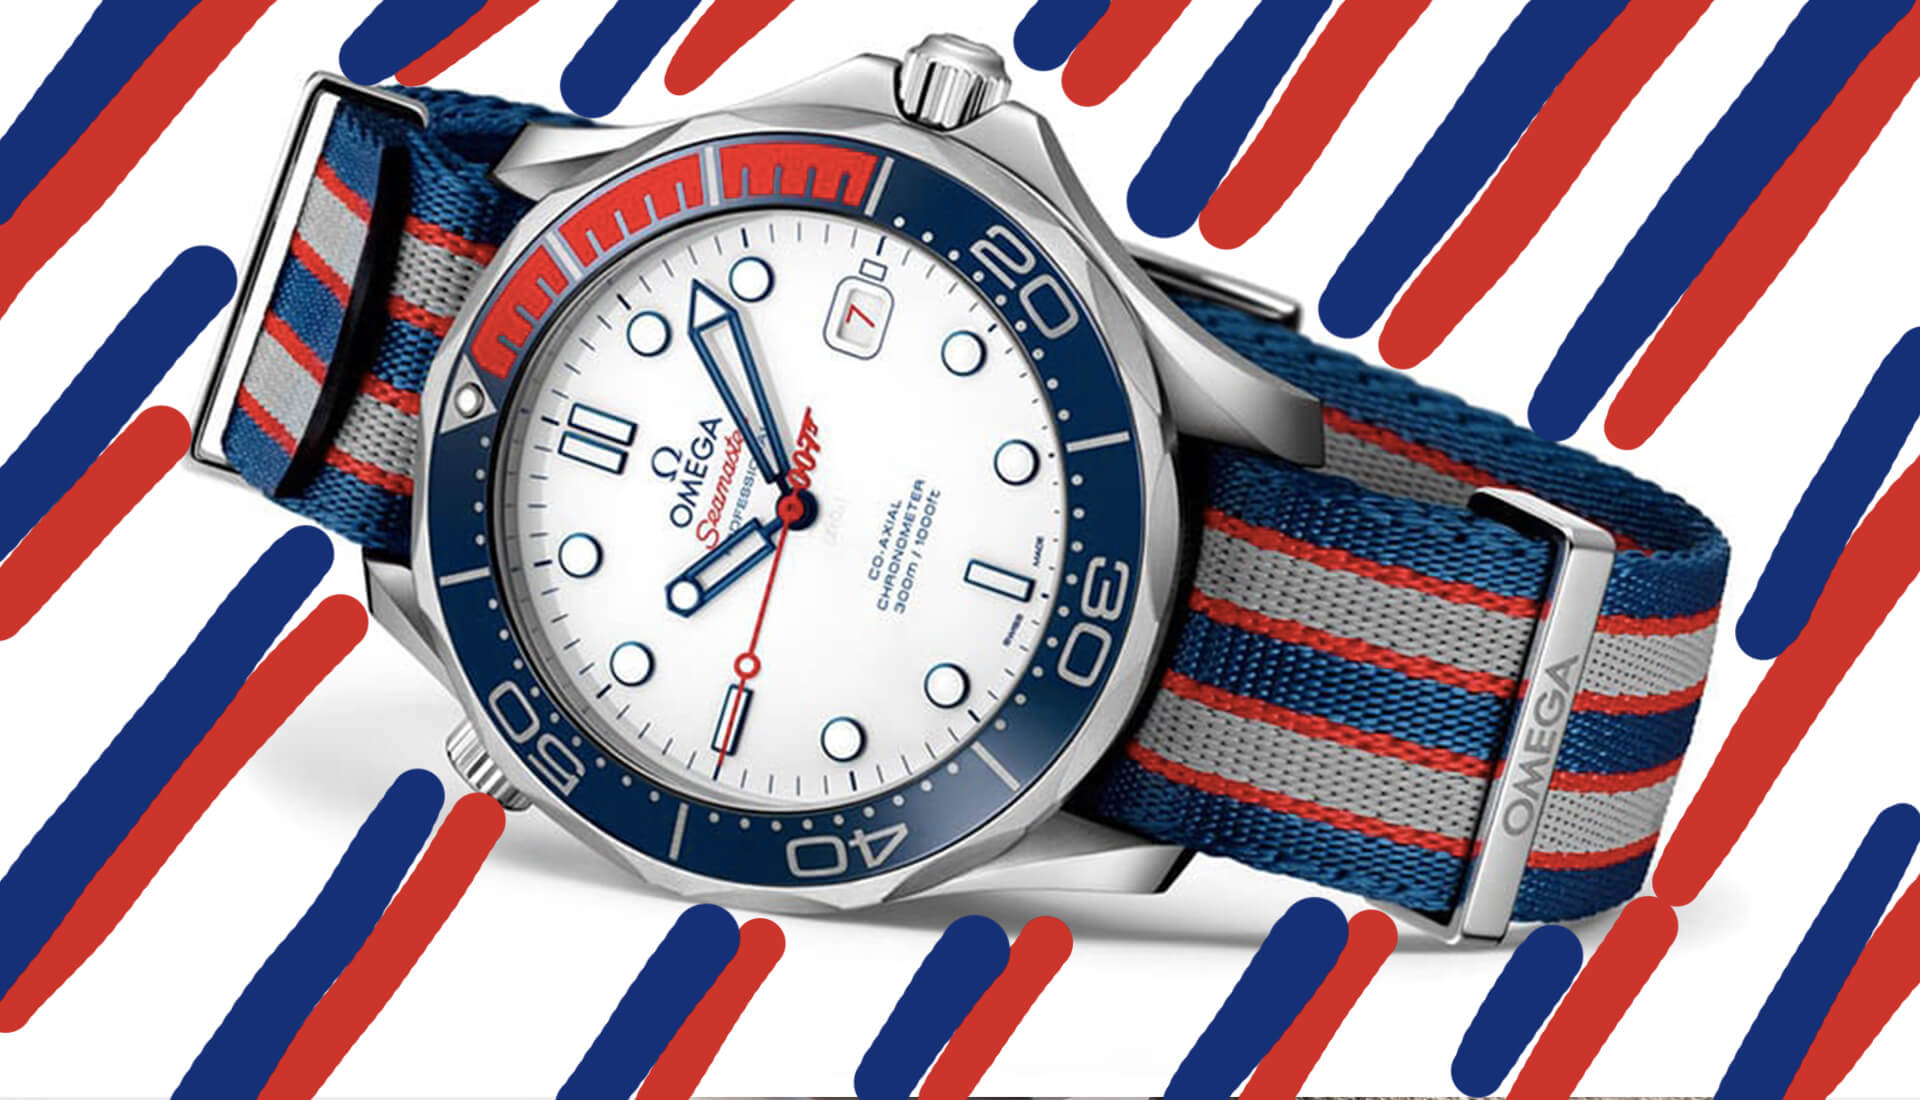 Watch 101: Four Ultra Patriotic Watches for the 4th of July